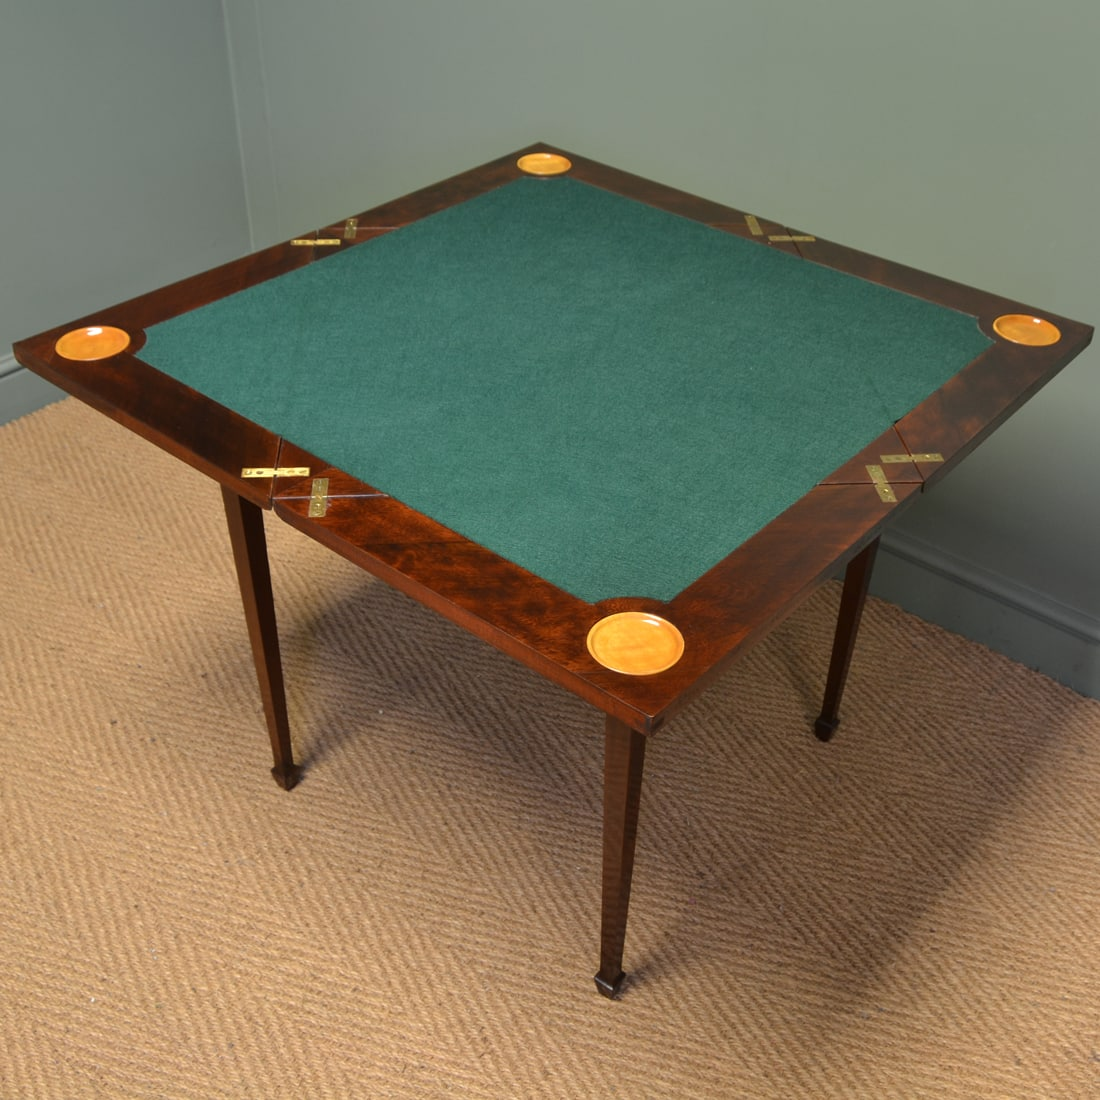 Spectacular Large Inlaid Envelope Mahogany Antique Card / Games Table.